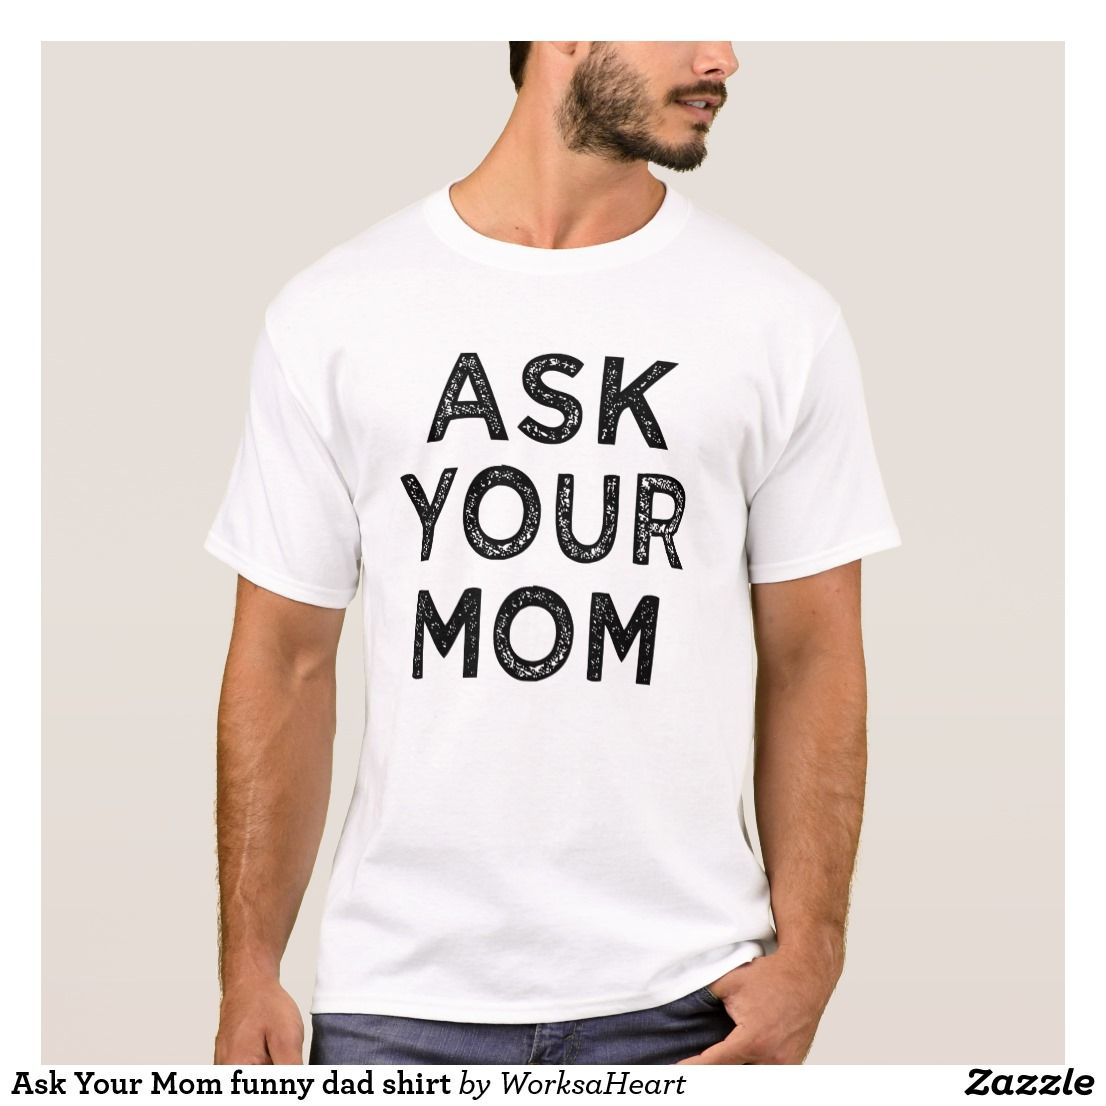 7407bf0a51d Ask Your Mom funny dad shirt. Order your personalized t-shirt